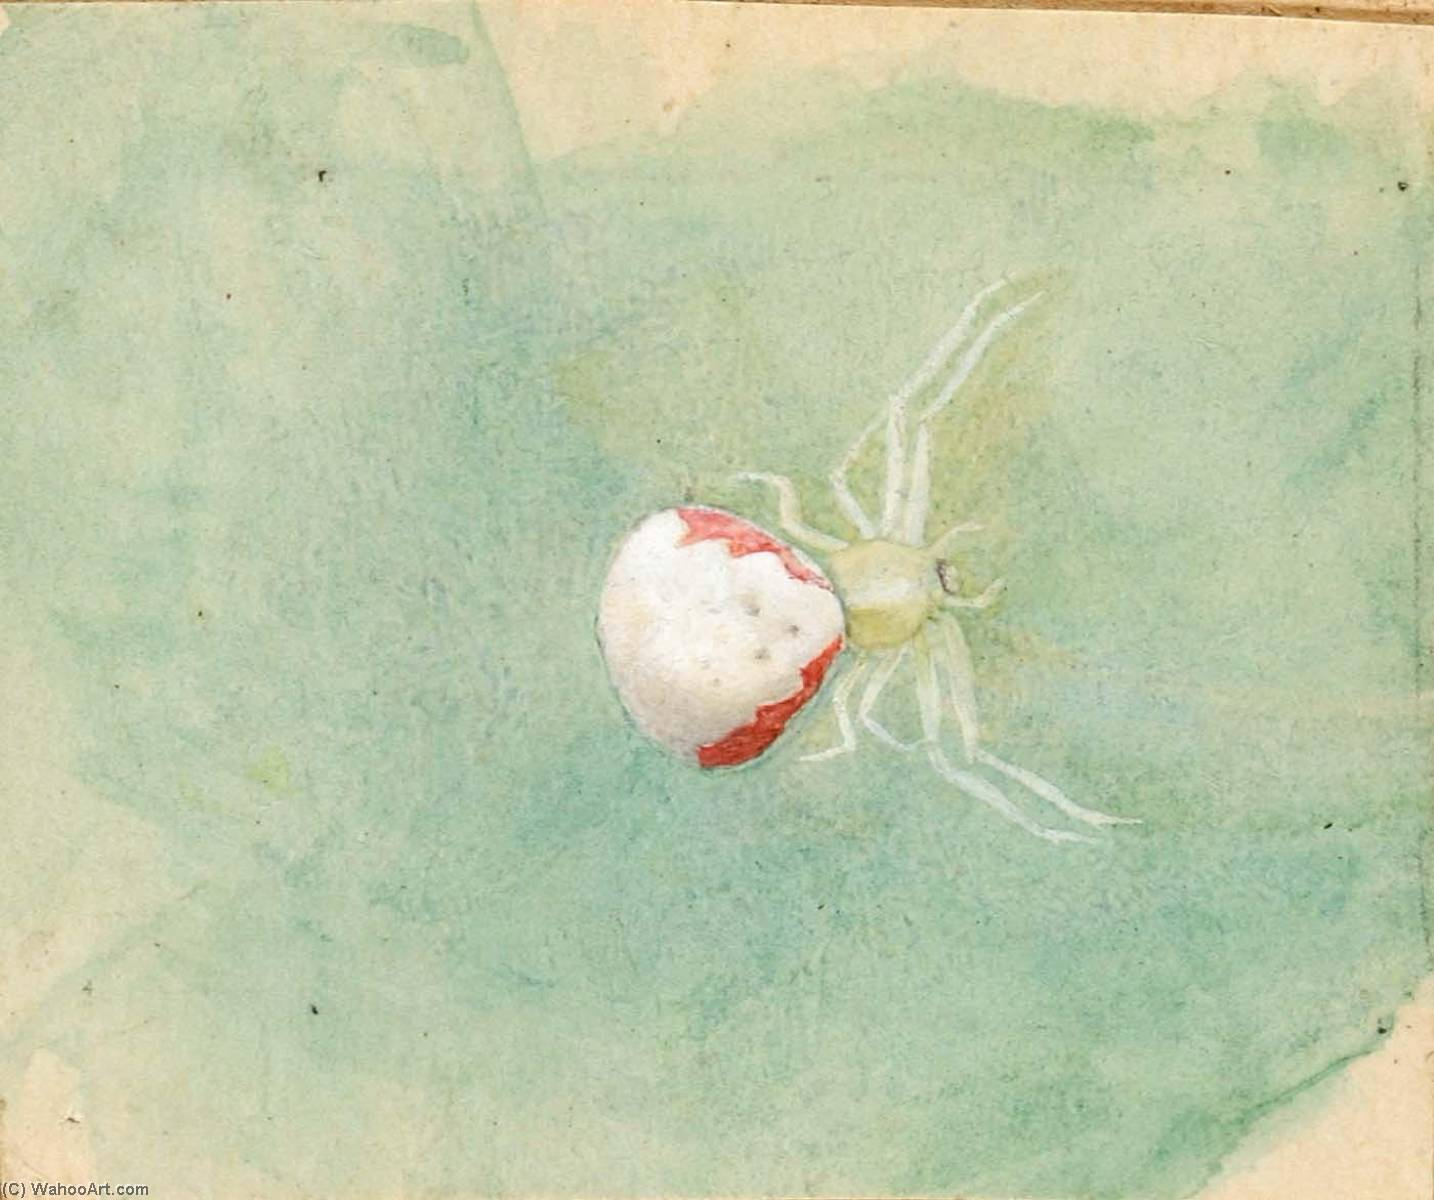 Porcelain White Spider by Emma Beach Thayer | Reproductions Emma Beach Thayer | WahooArt.com